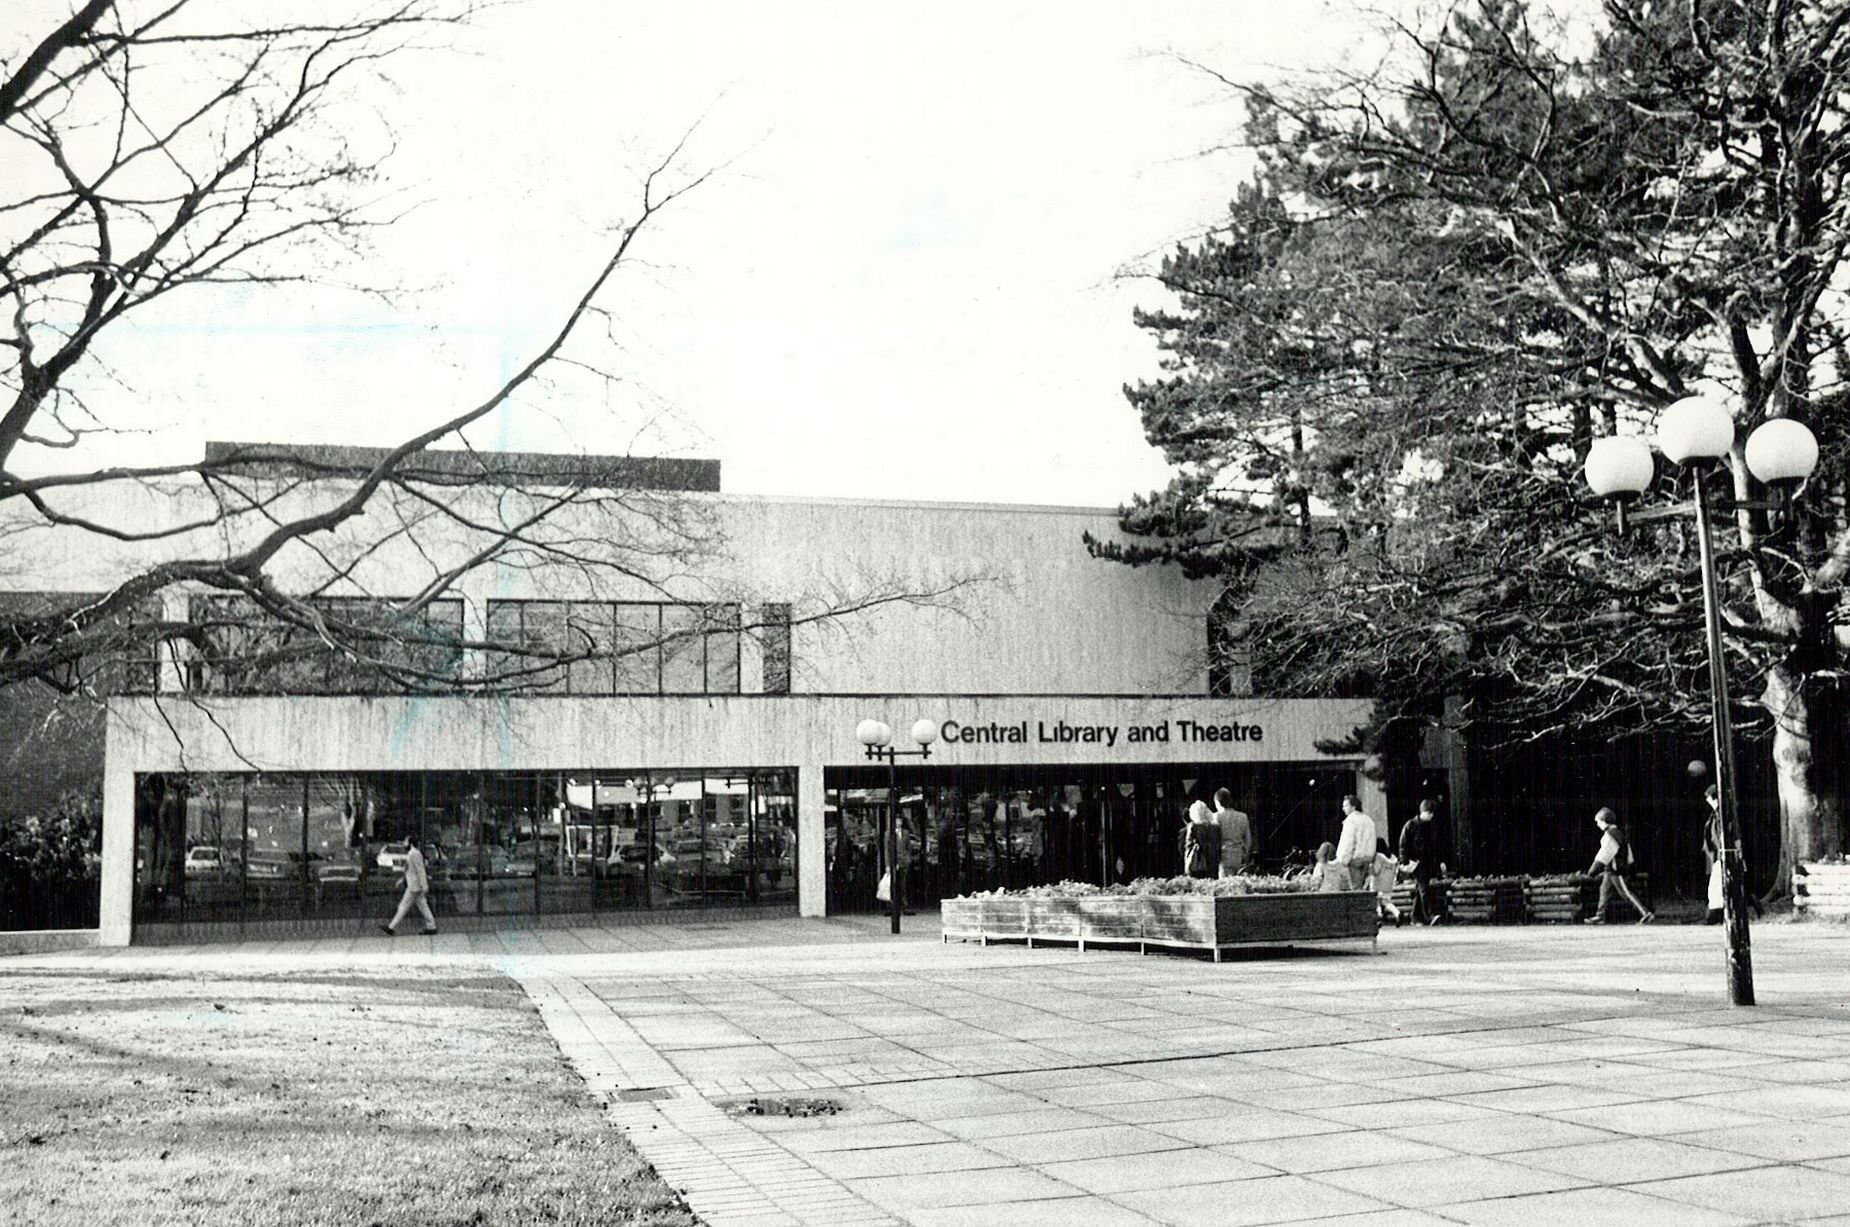 Solihull Central Library and Theatre before Touchwood encased it, 31st December 1987.